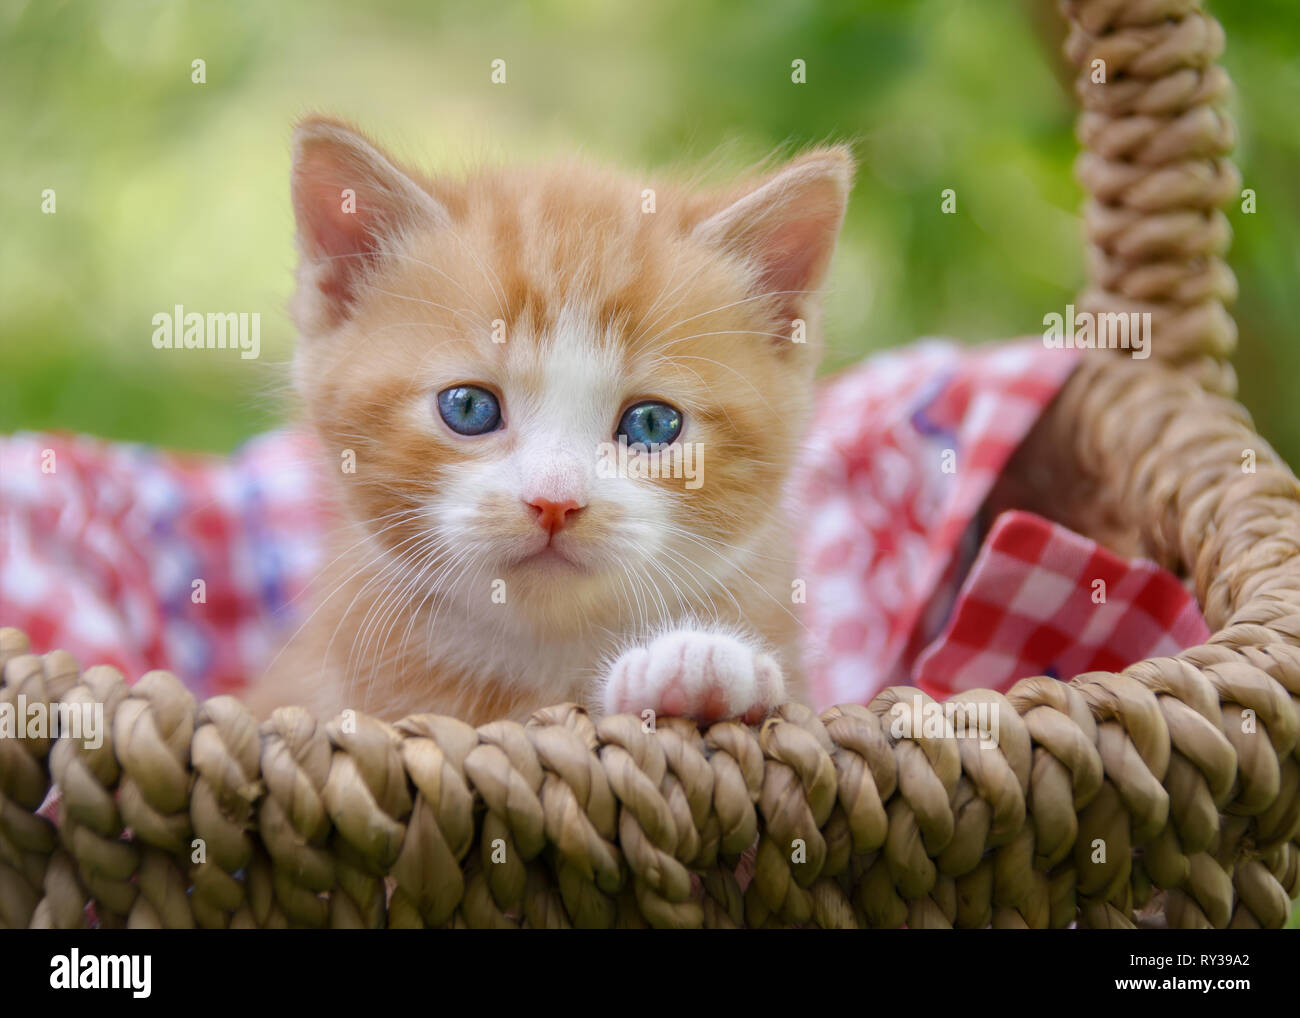 Cute Red Tabby White Baby Cat Kitten With Beautiful Blue Eyes Sitting In A Wicker Basket In A Garden And Watching Curiously Stock Photo Alamy